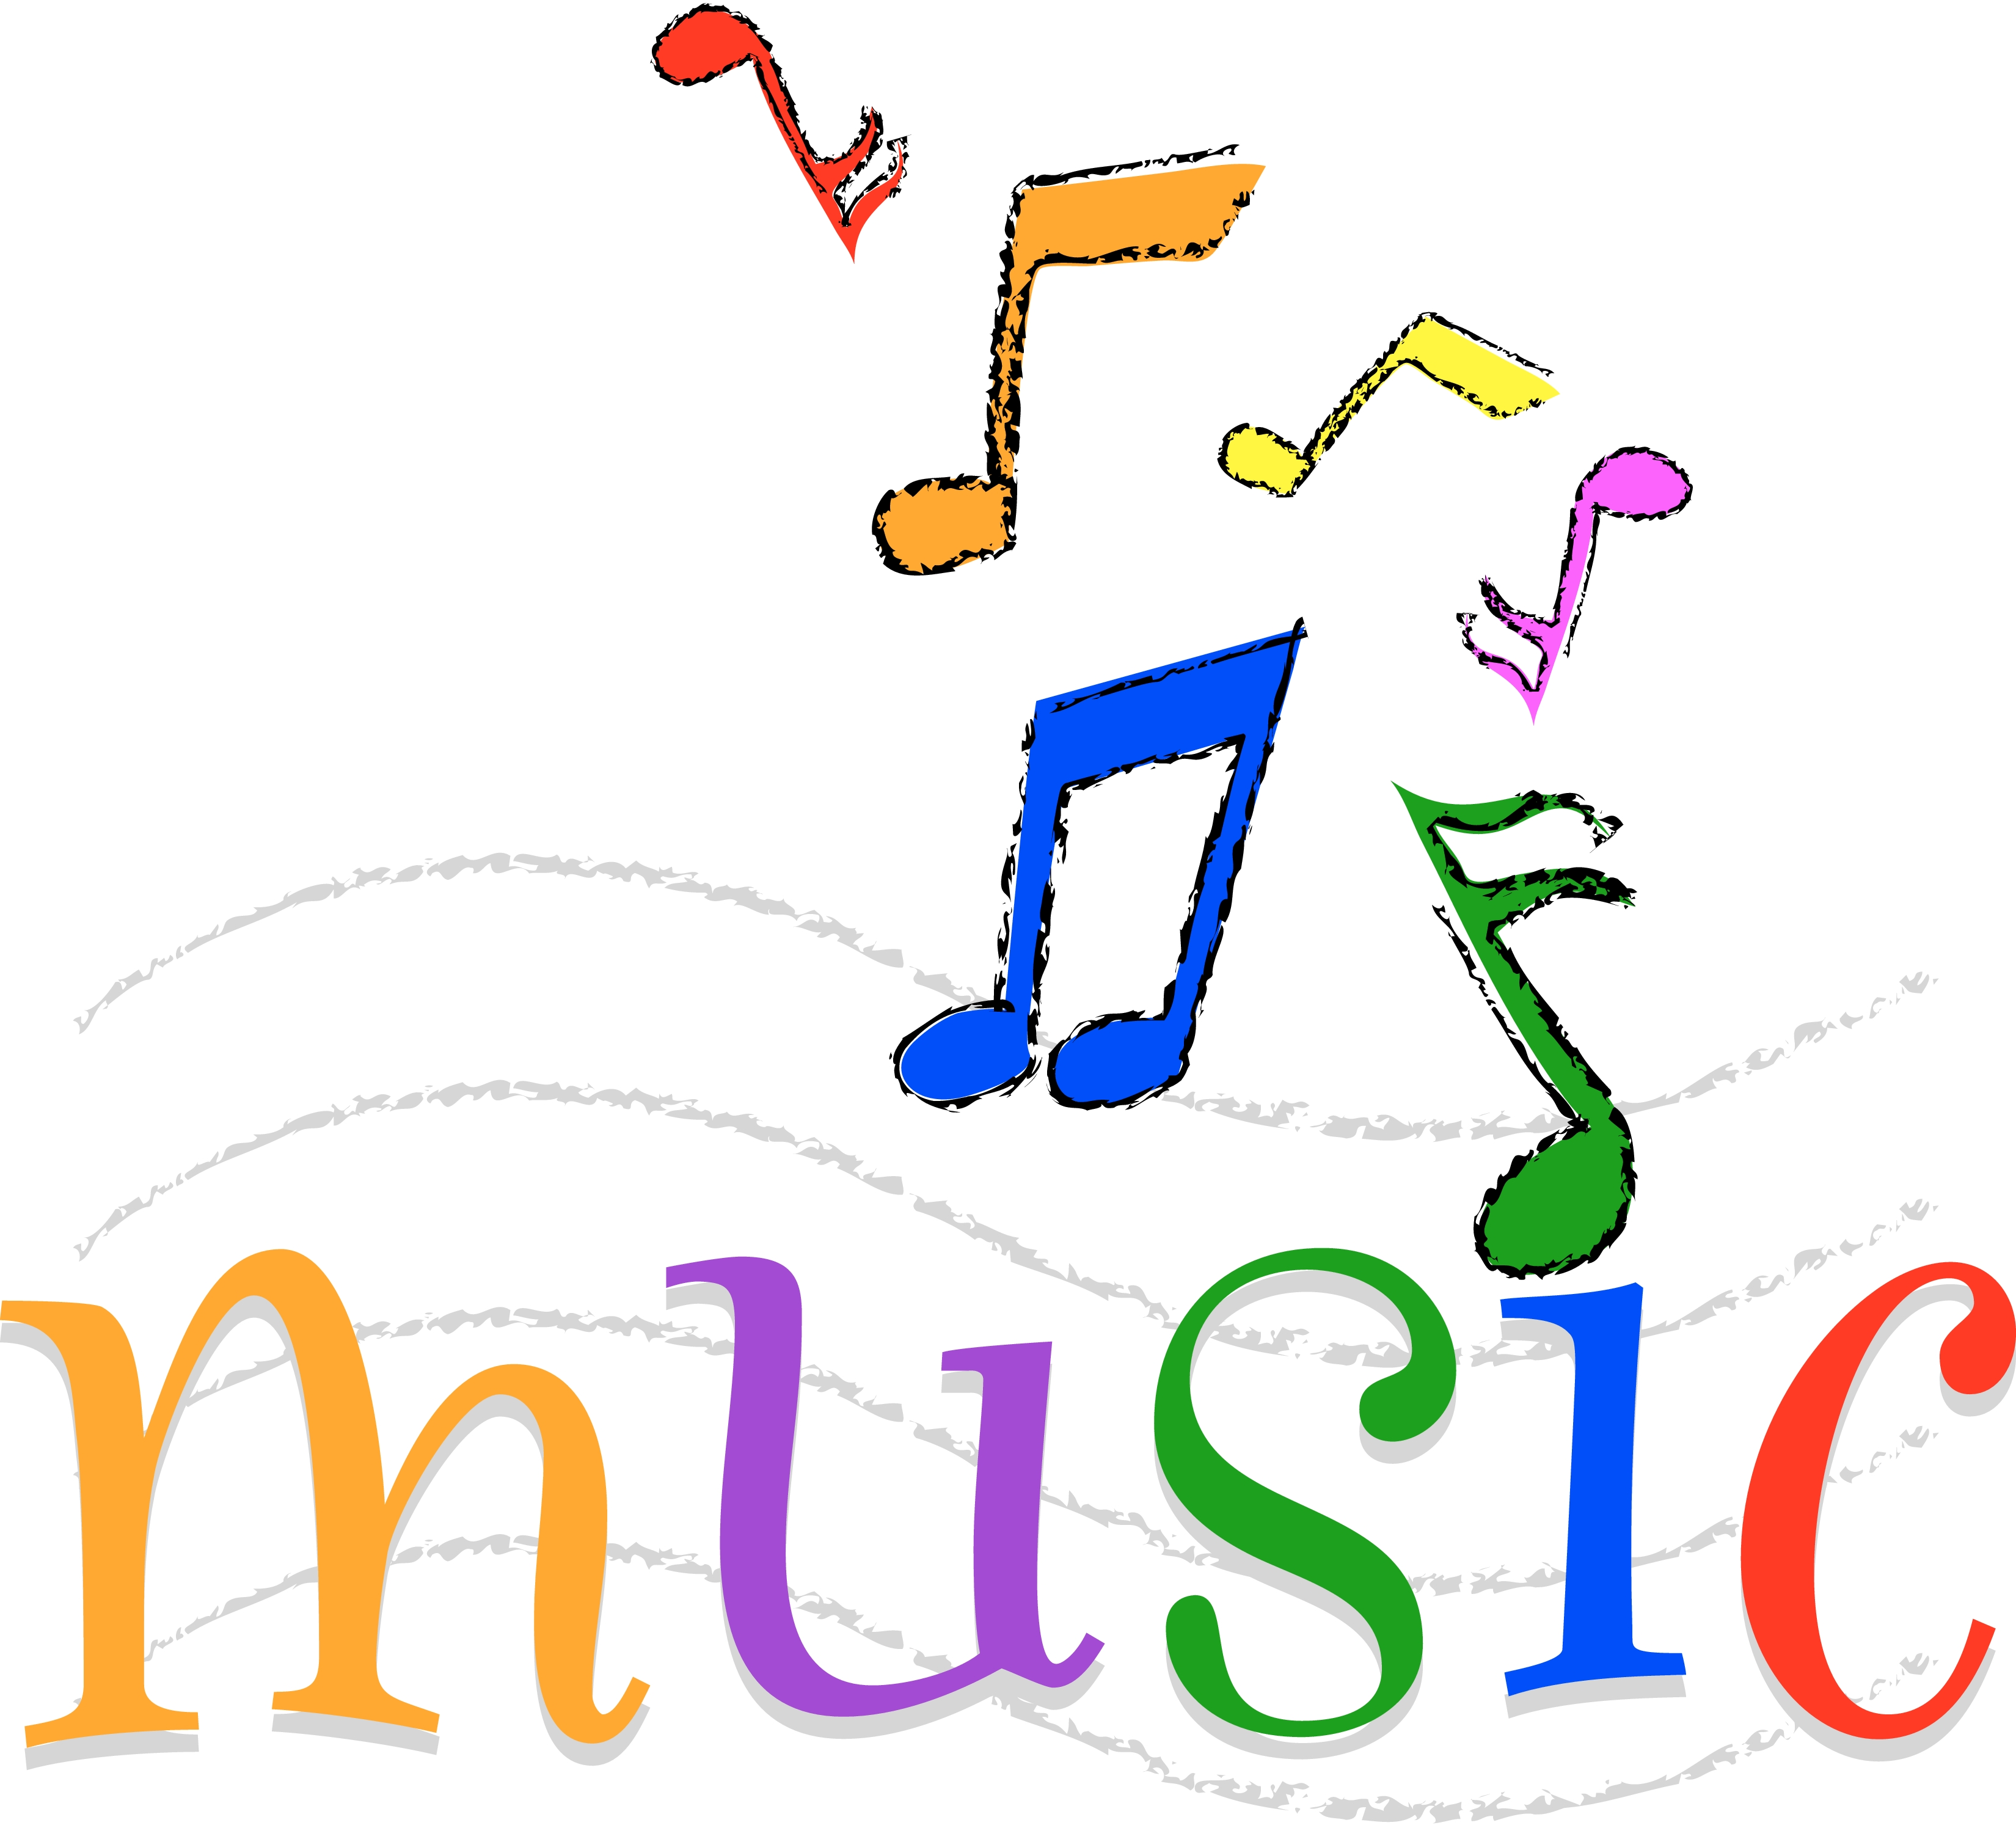 Colorful Music Notes Clip Art N21 free image.